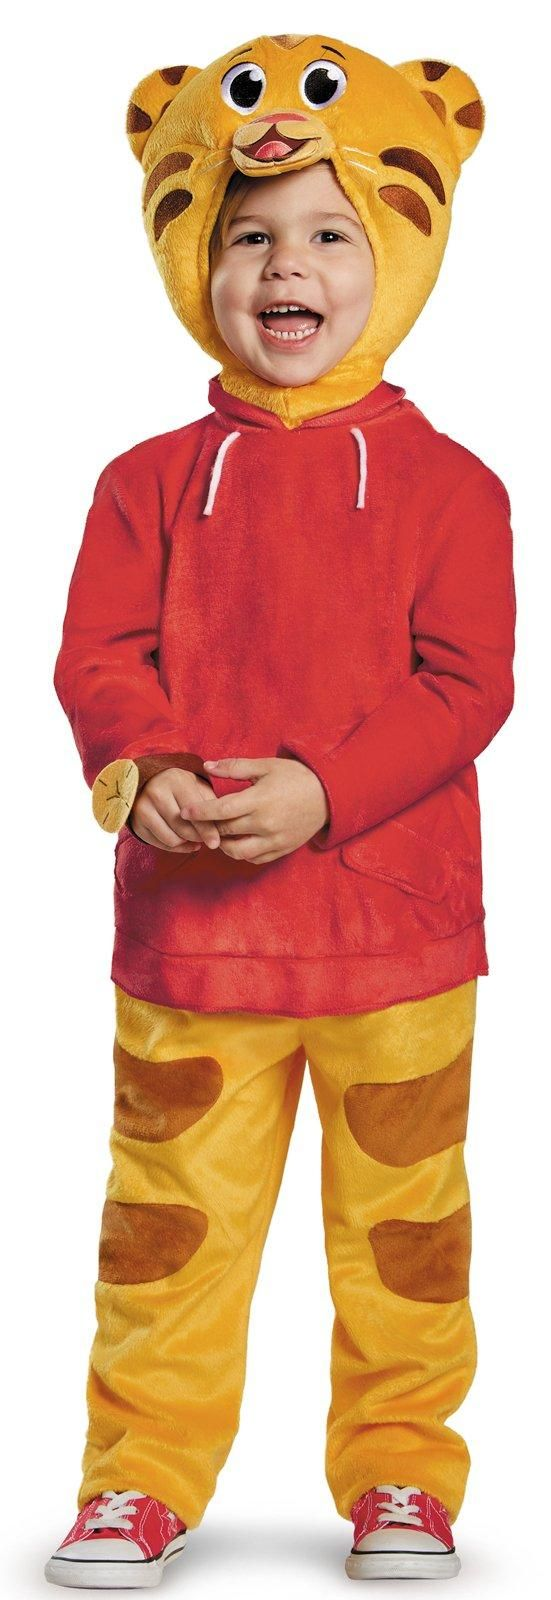 Deluxe Daniel Tiger Costume For Toddlers - Baby/Toddler ...